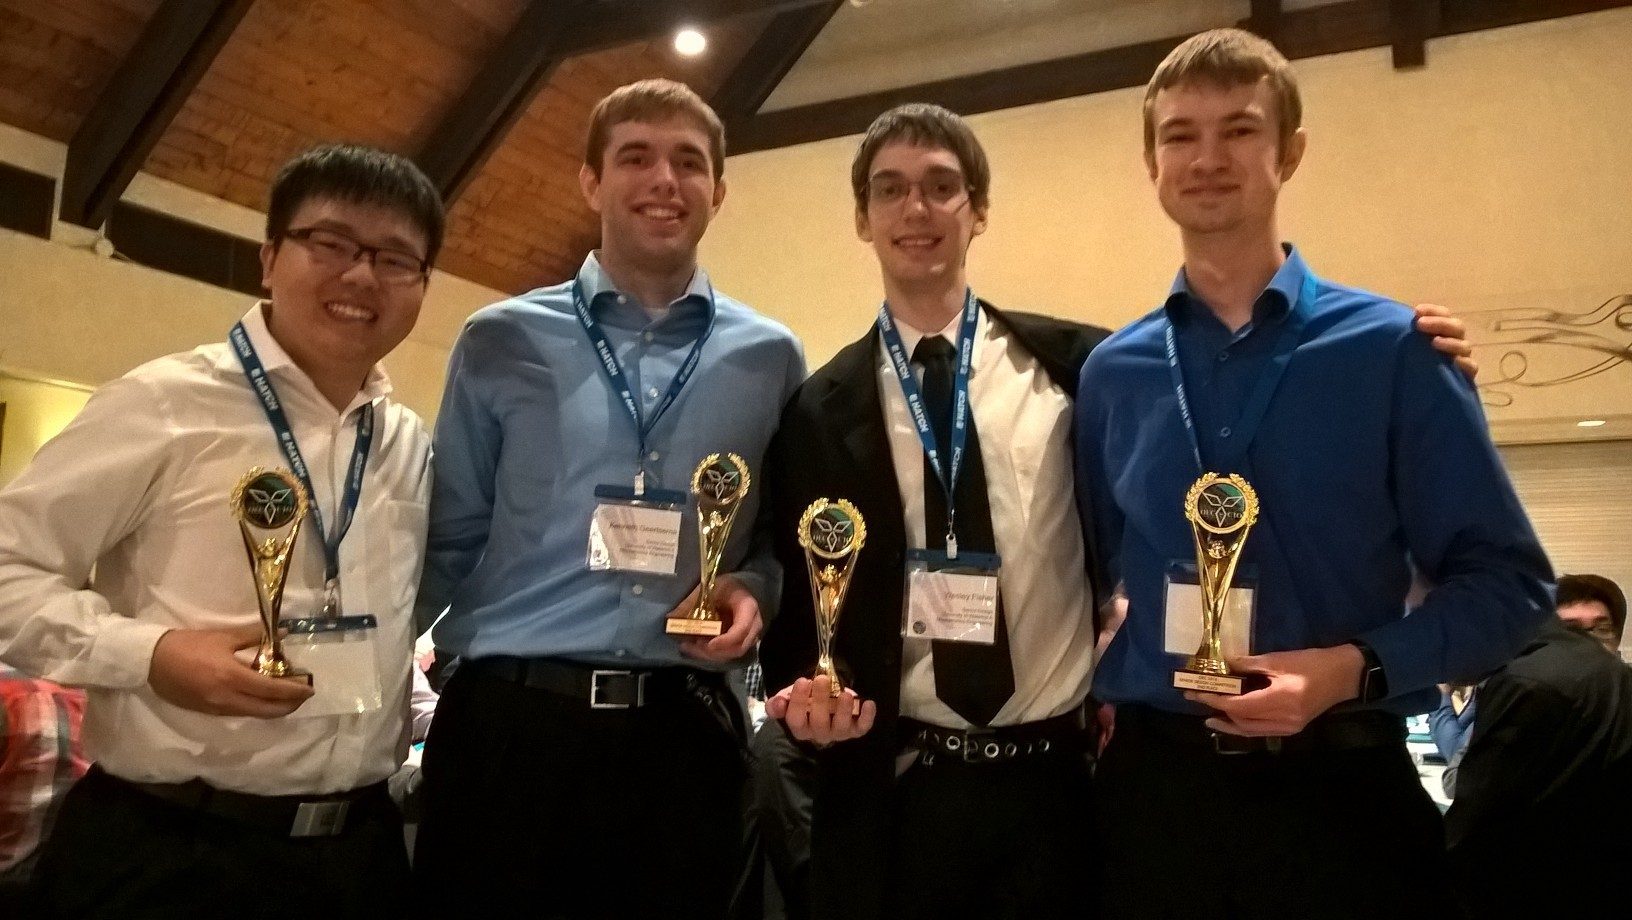 From the left, Eric Shi, Kenneth Geertsema, Wesley Fisher, and Daniel Lizewski.